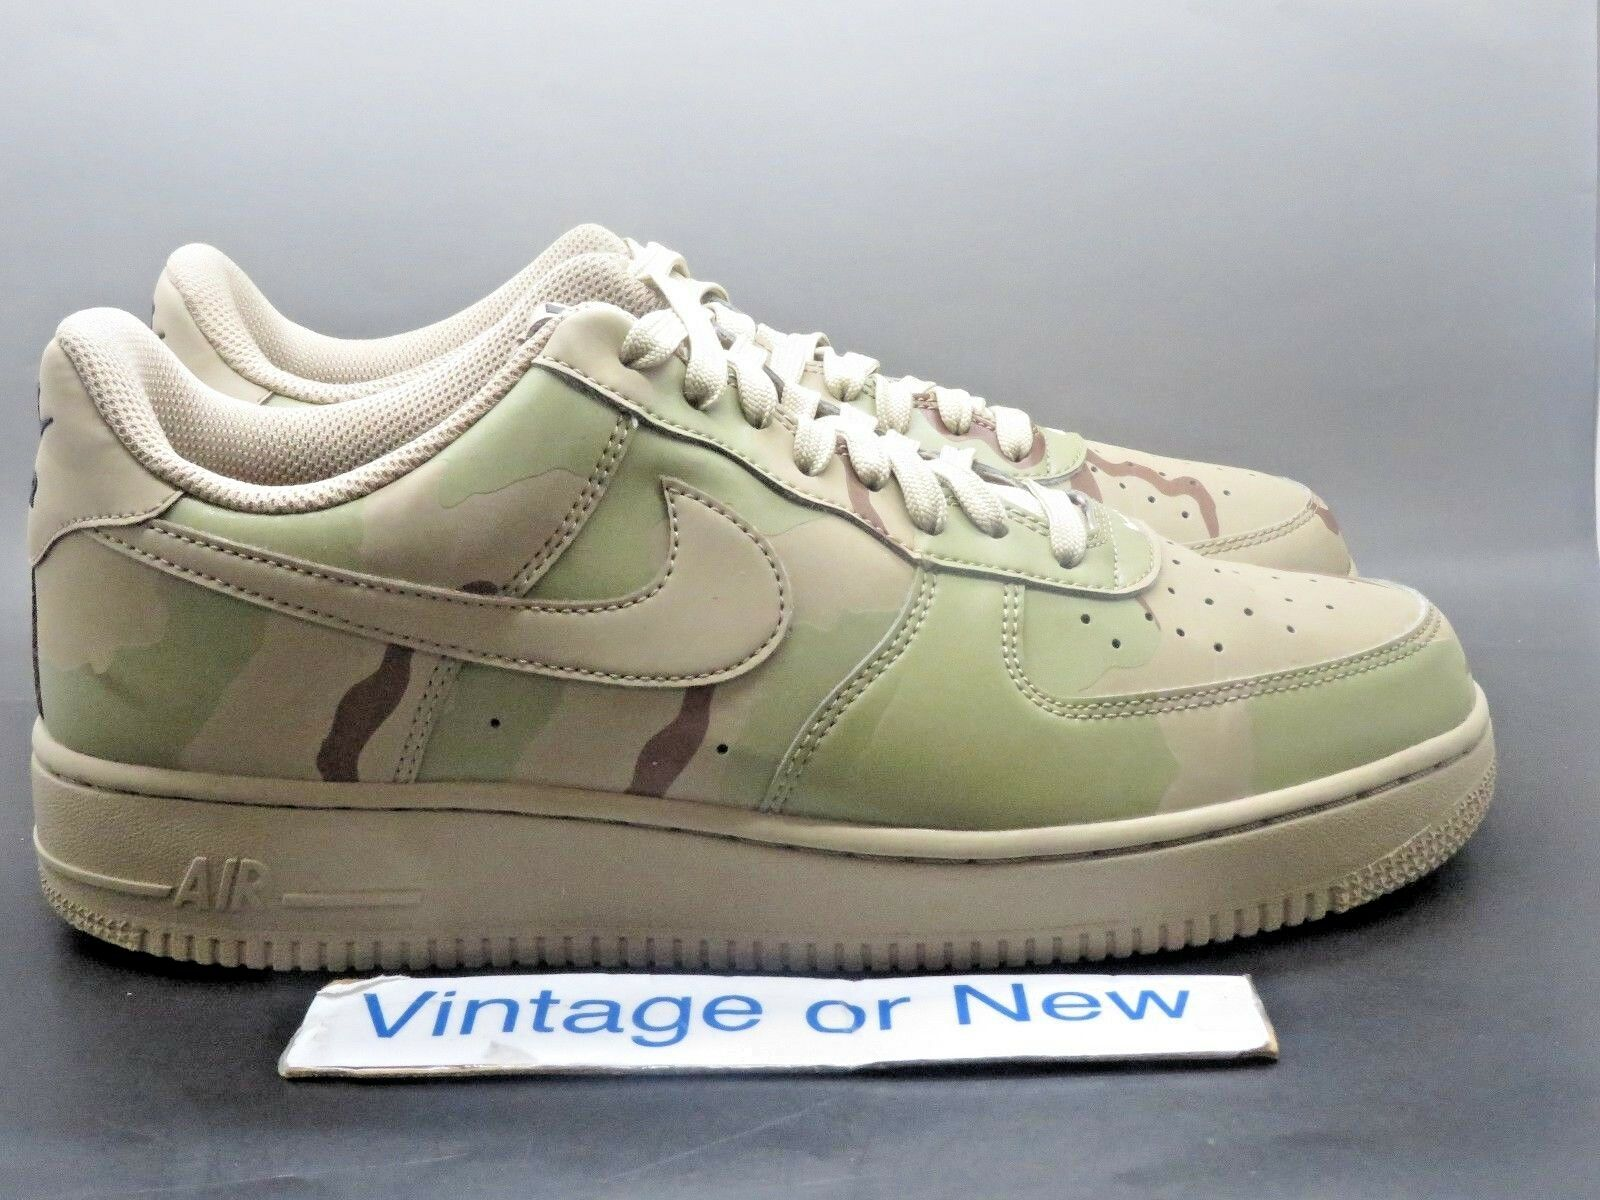 Wild casual shoes Nike Air Force 1 '07 Low LV8 Reflective Desert Camo 2018 Price reduction